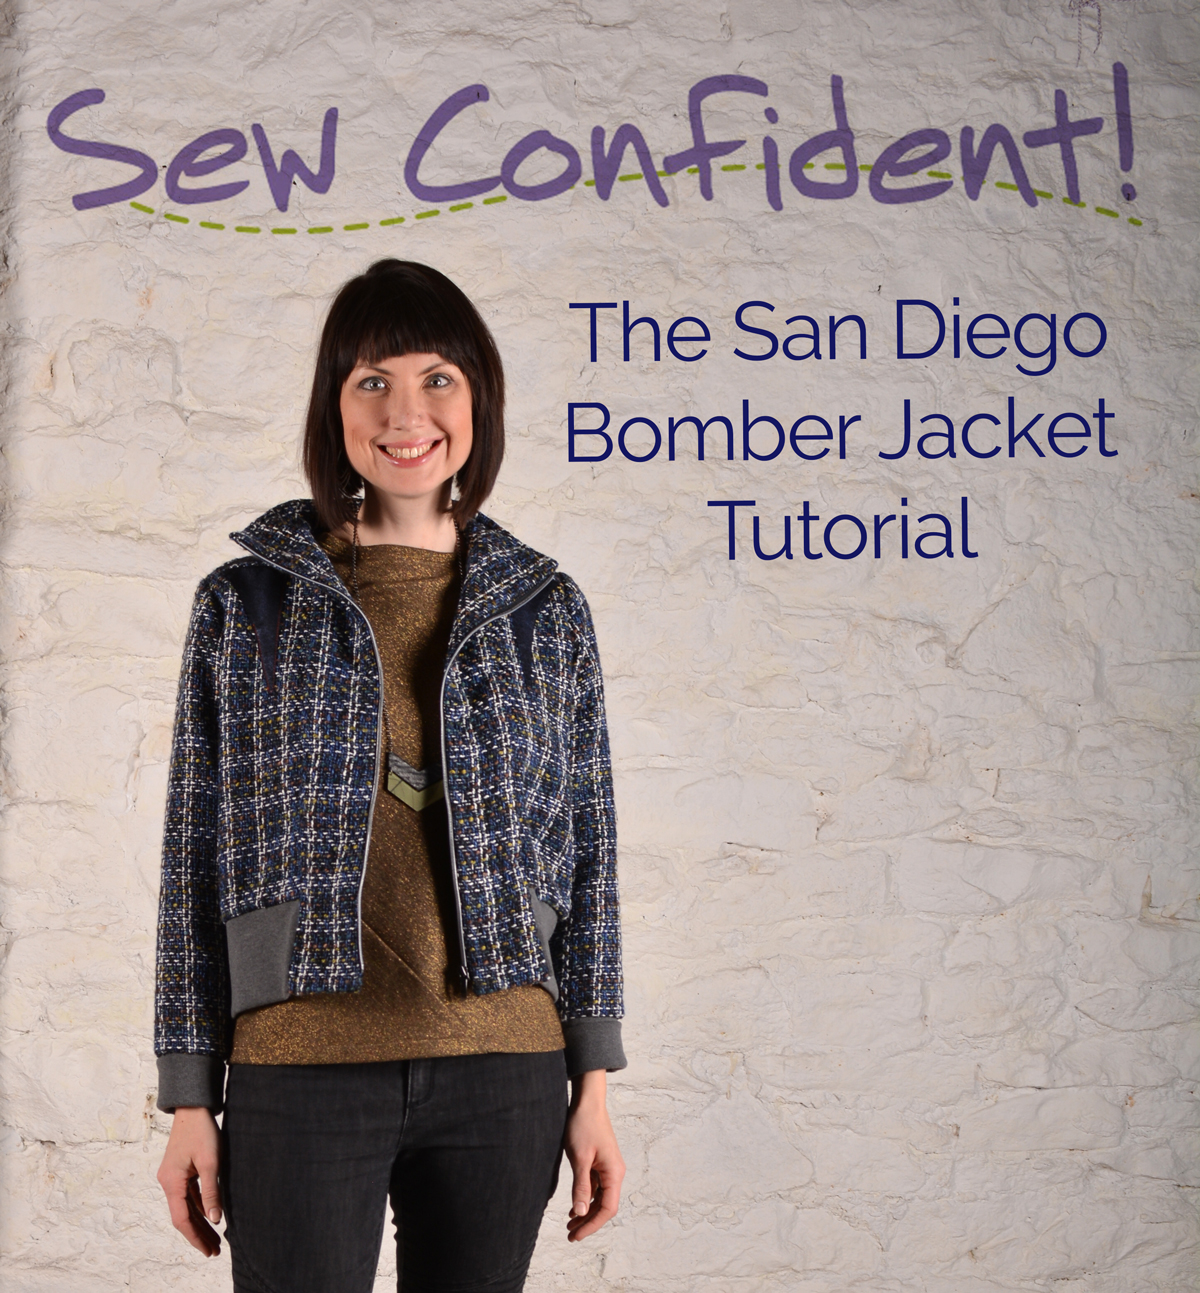 January Sew Confident! The San Diego Bomber